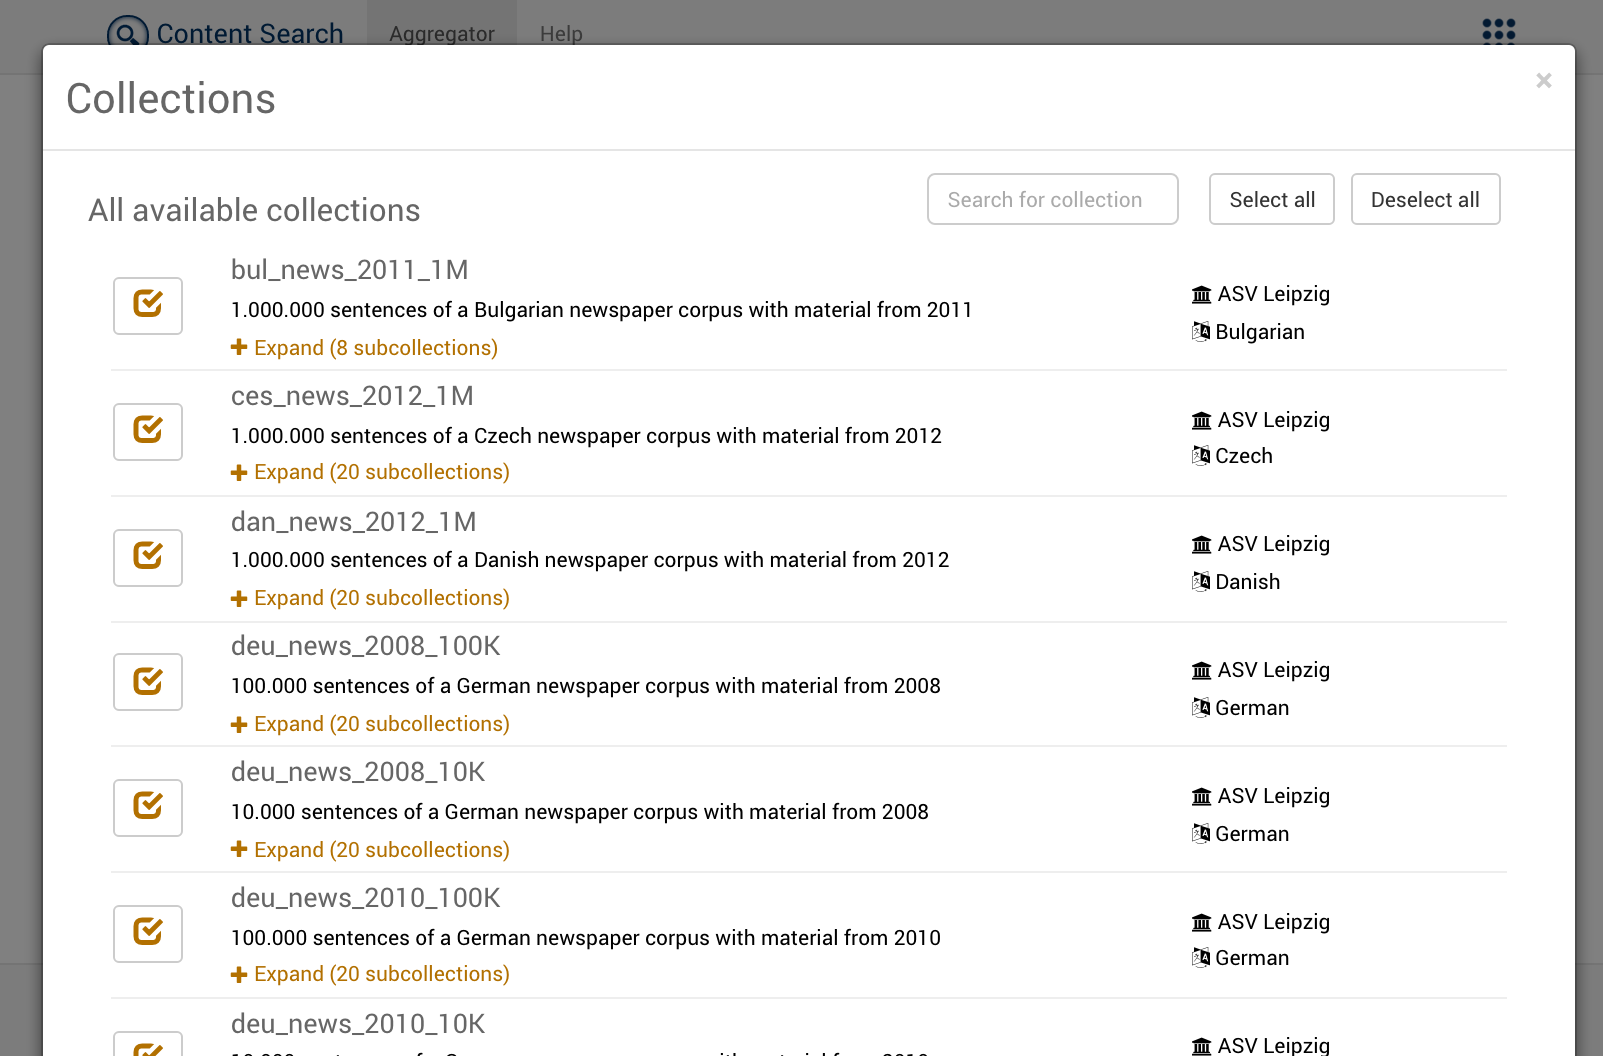 Collections Dialog